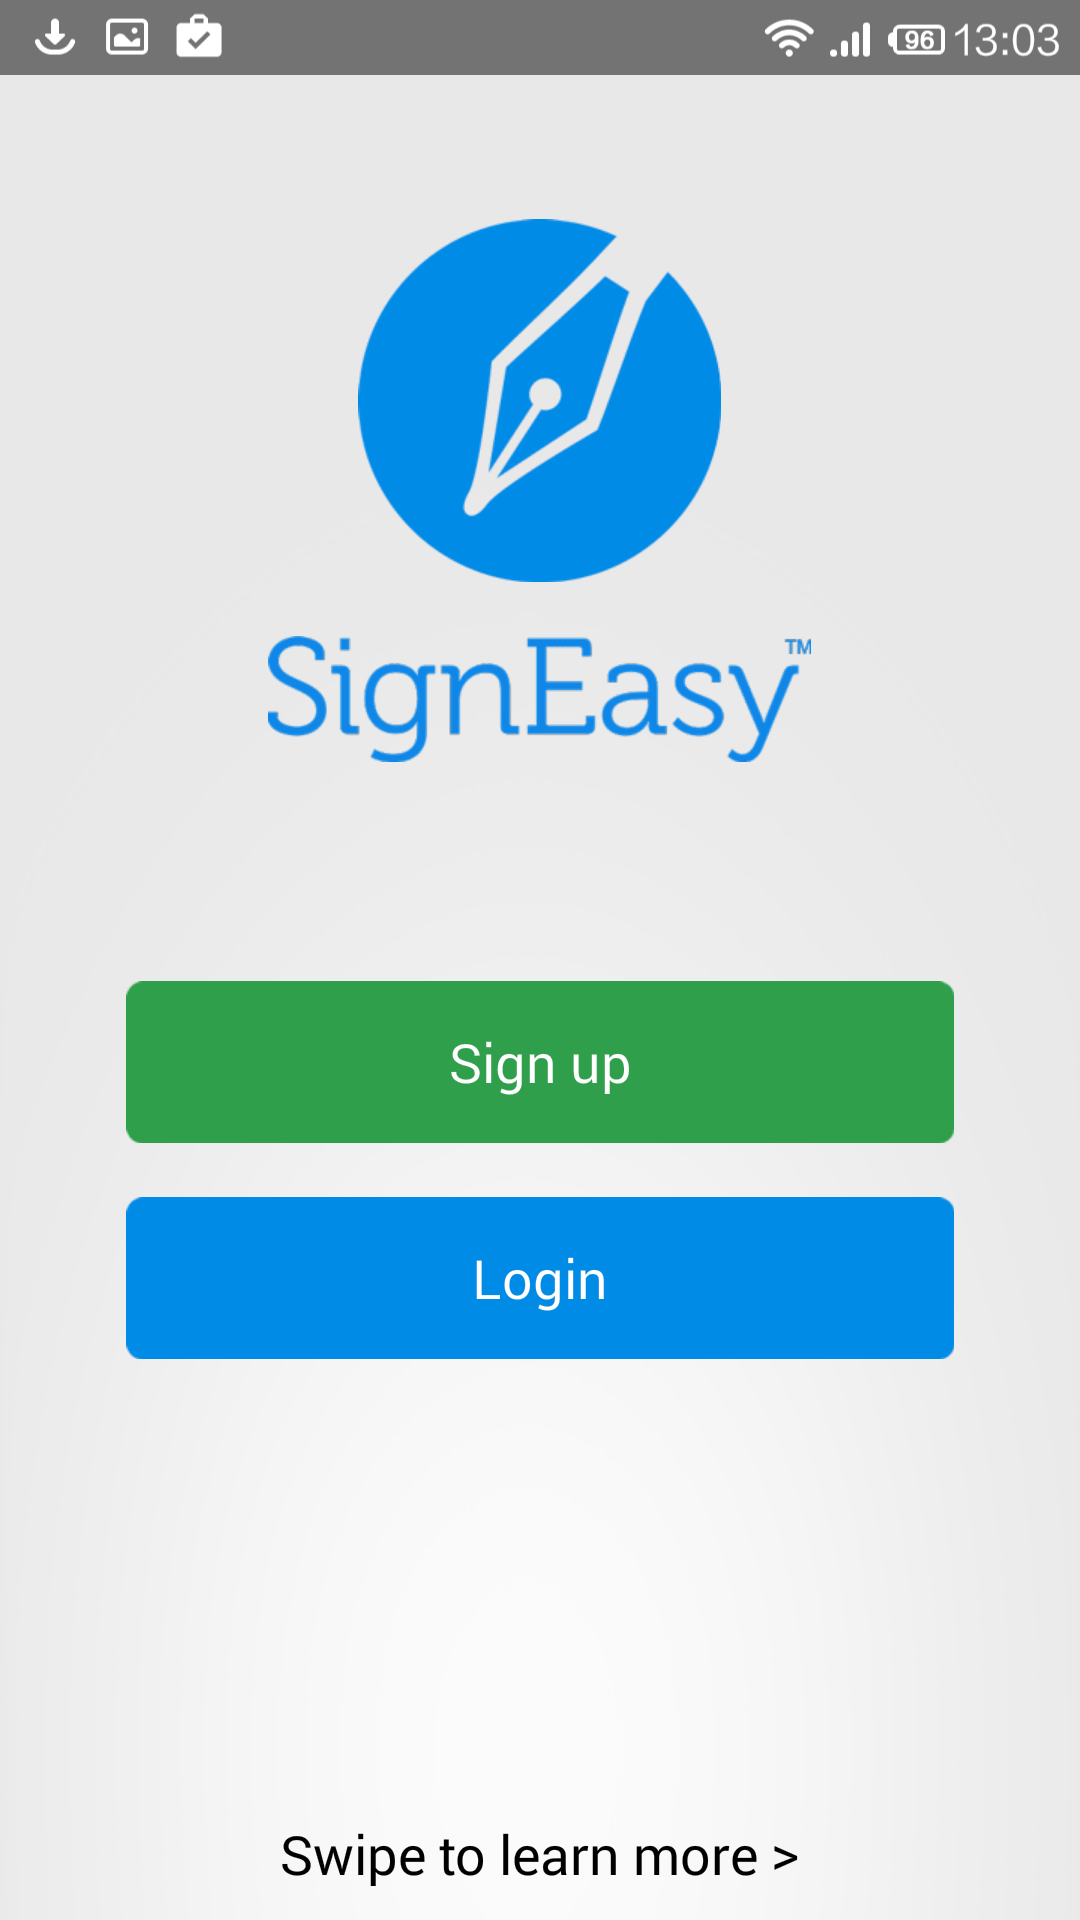 Sign Up for SignEasy app